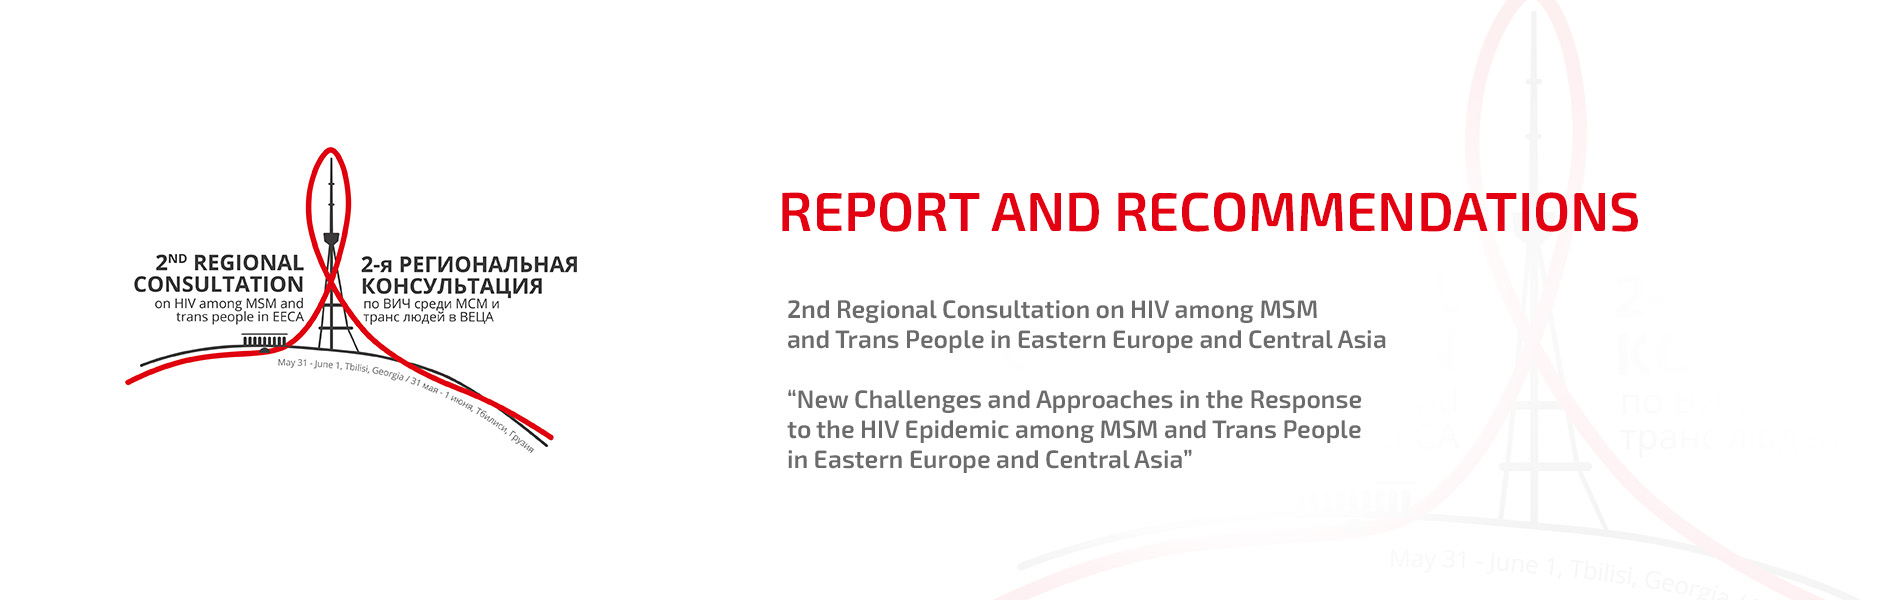 Report and recommendations were developed on how to strengthen the response to HIV epidemic among MSM and trans people in the EECA countries.